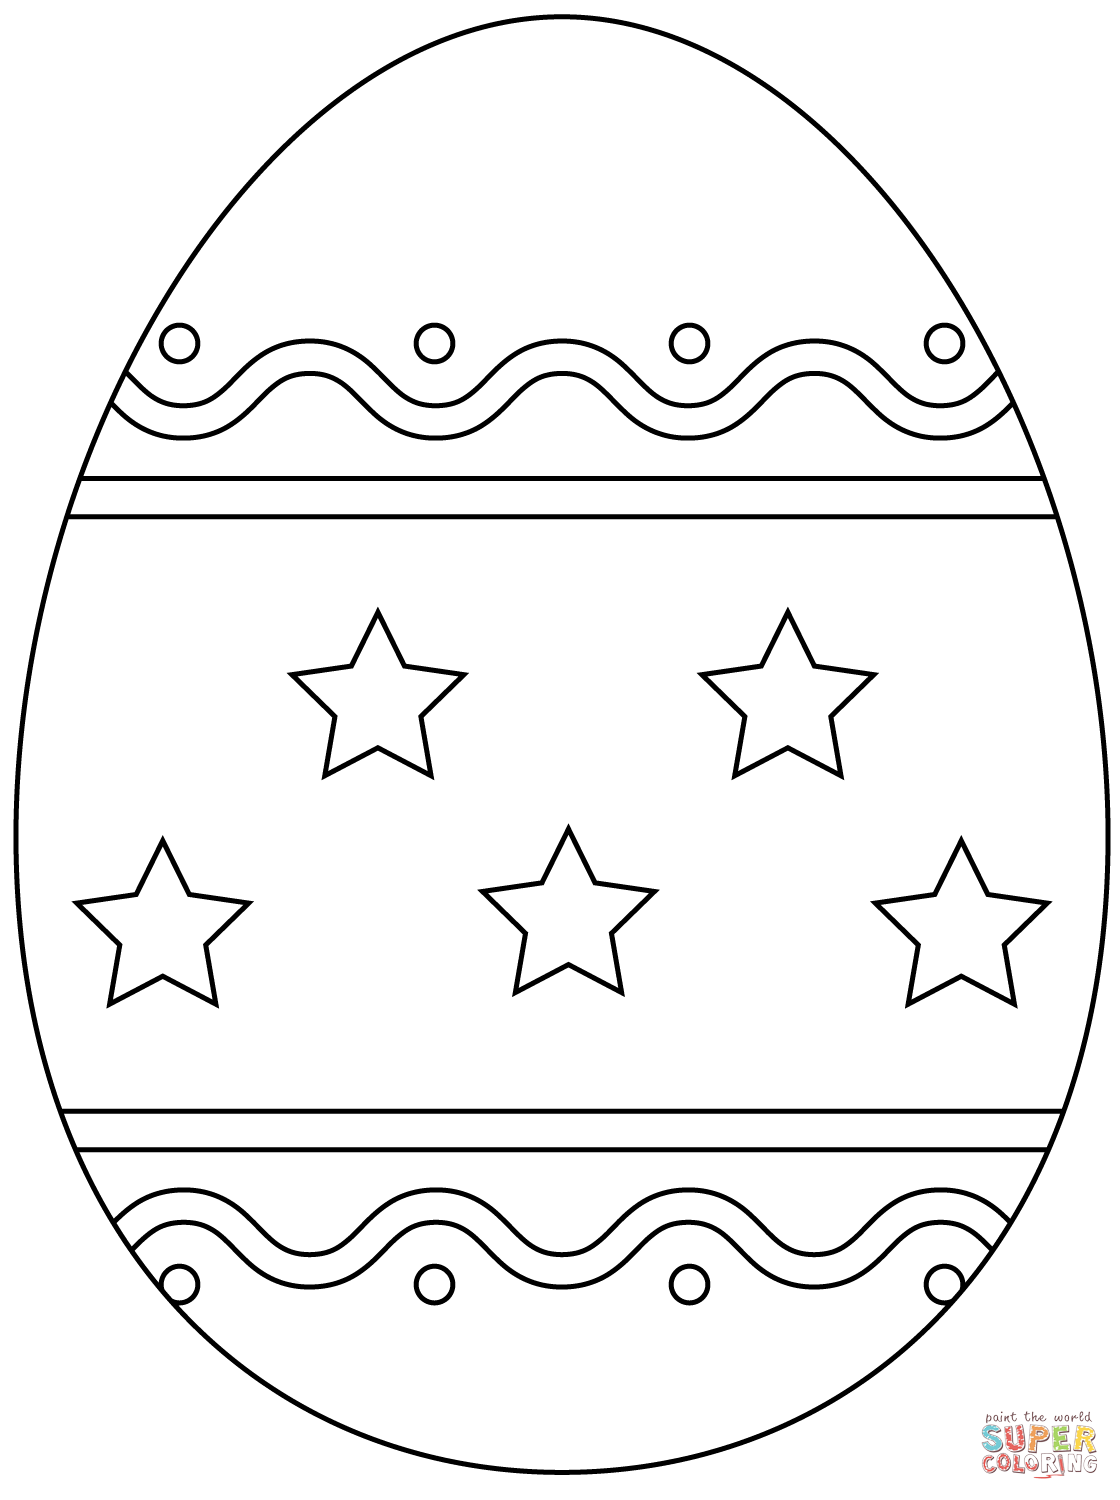 Easter Egg With Simple Pattern Super Coloring Easter Egg Coloring Pages Easter Coloring Book Easter Coloring Pages